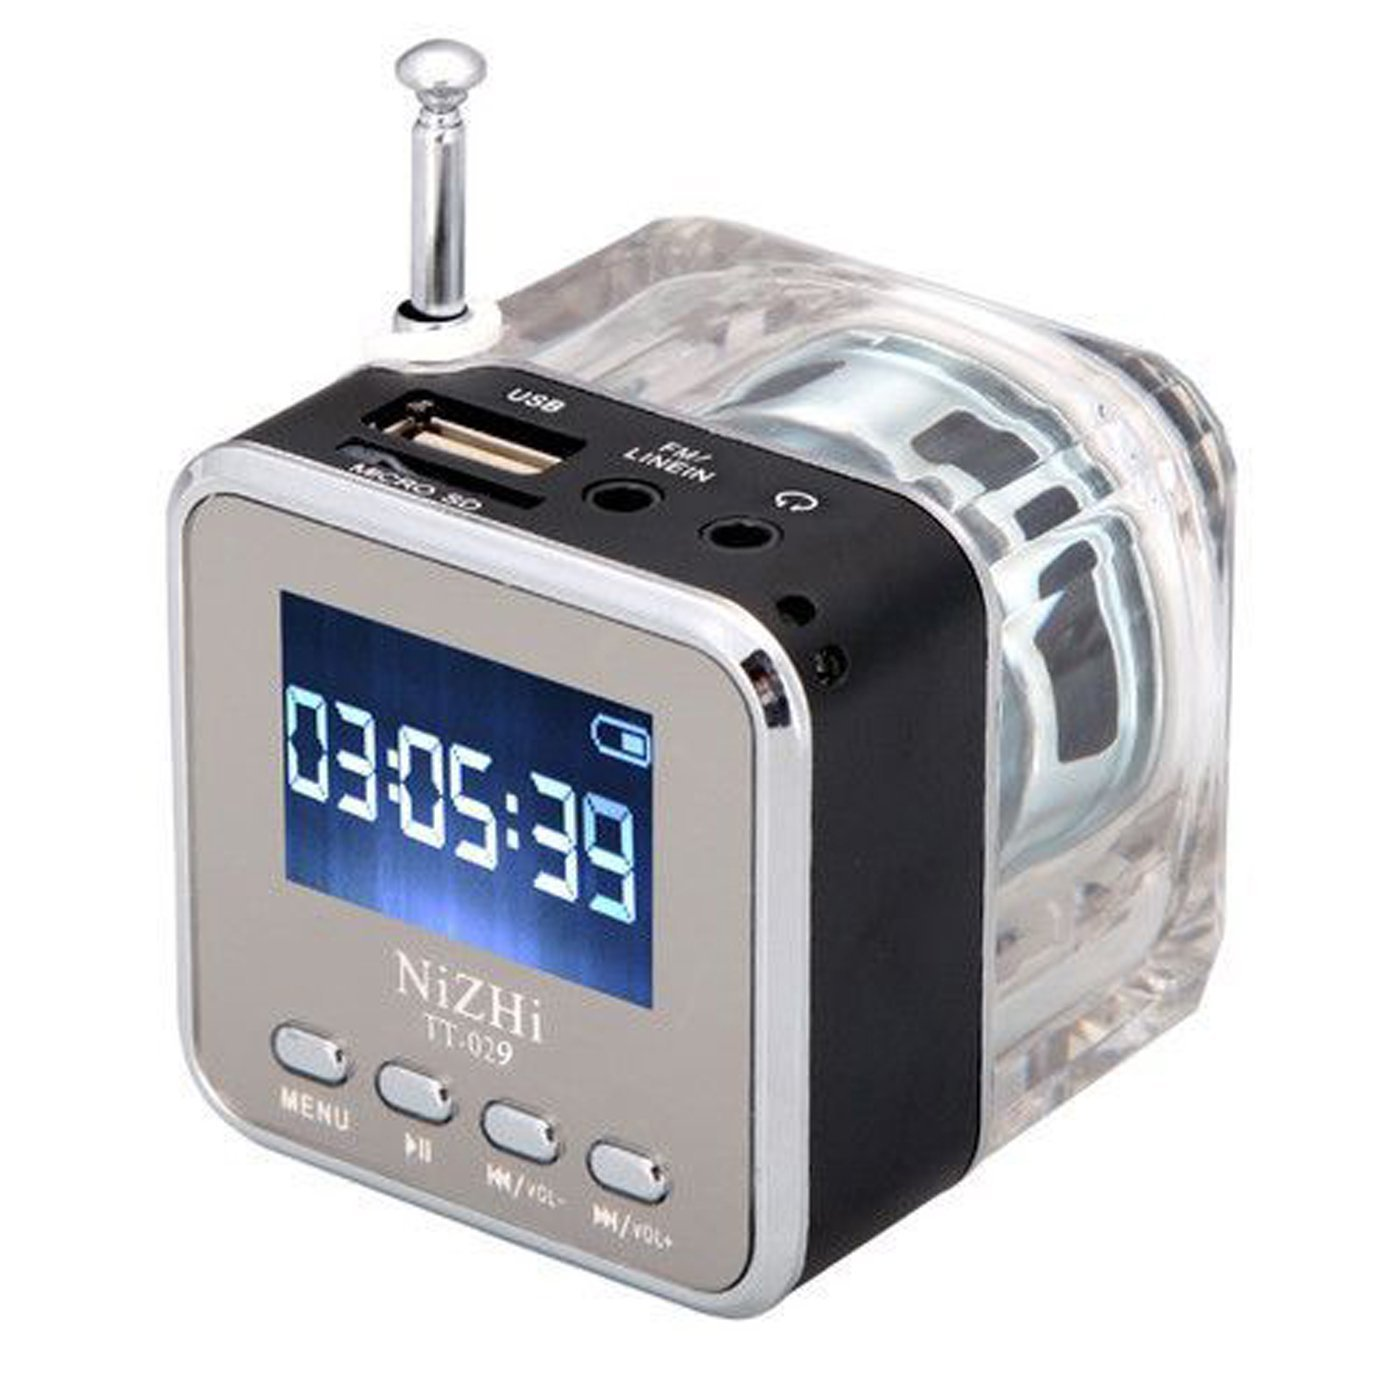 Digital Portable Mini Speaker Player with pre-filled memory card (Sehaj Paath)